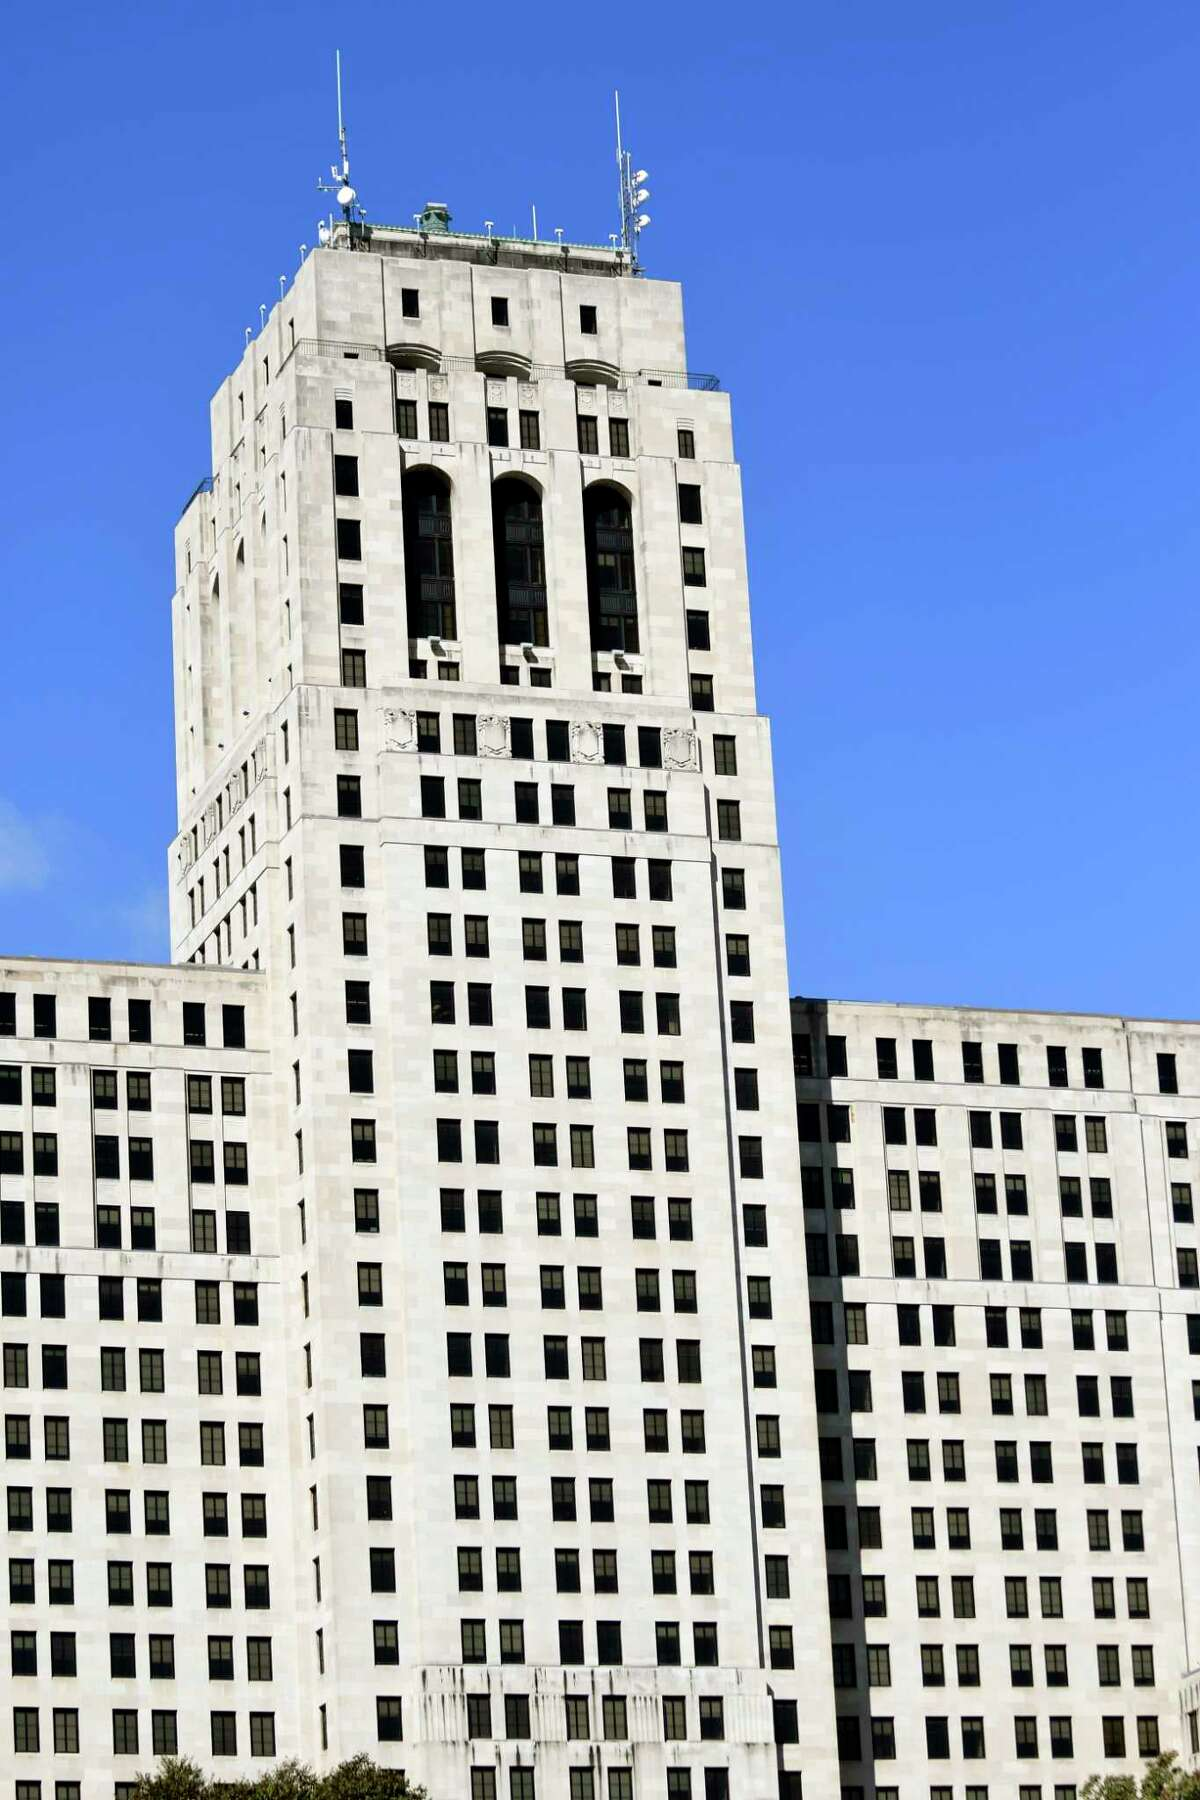 The Alfred E. Smith Building on Wednesday, Oct. 5, 2016, in Albany, N.Y. (Cindy Schultz / Times Union)